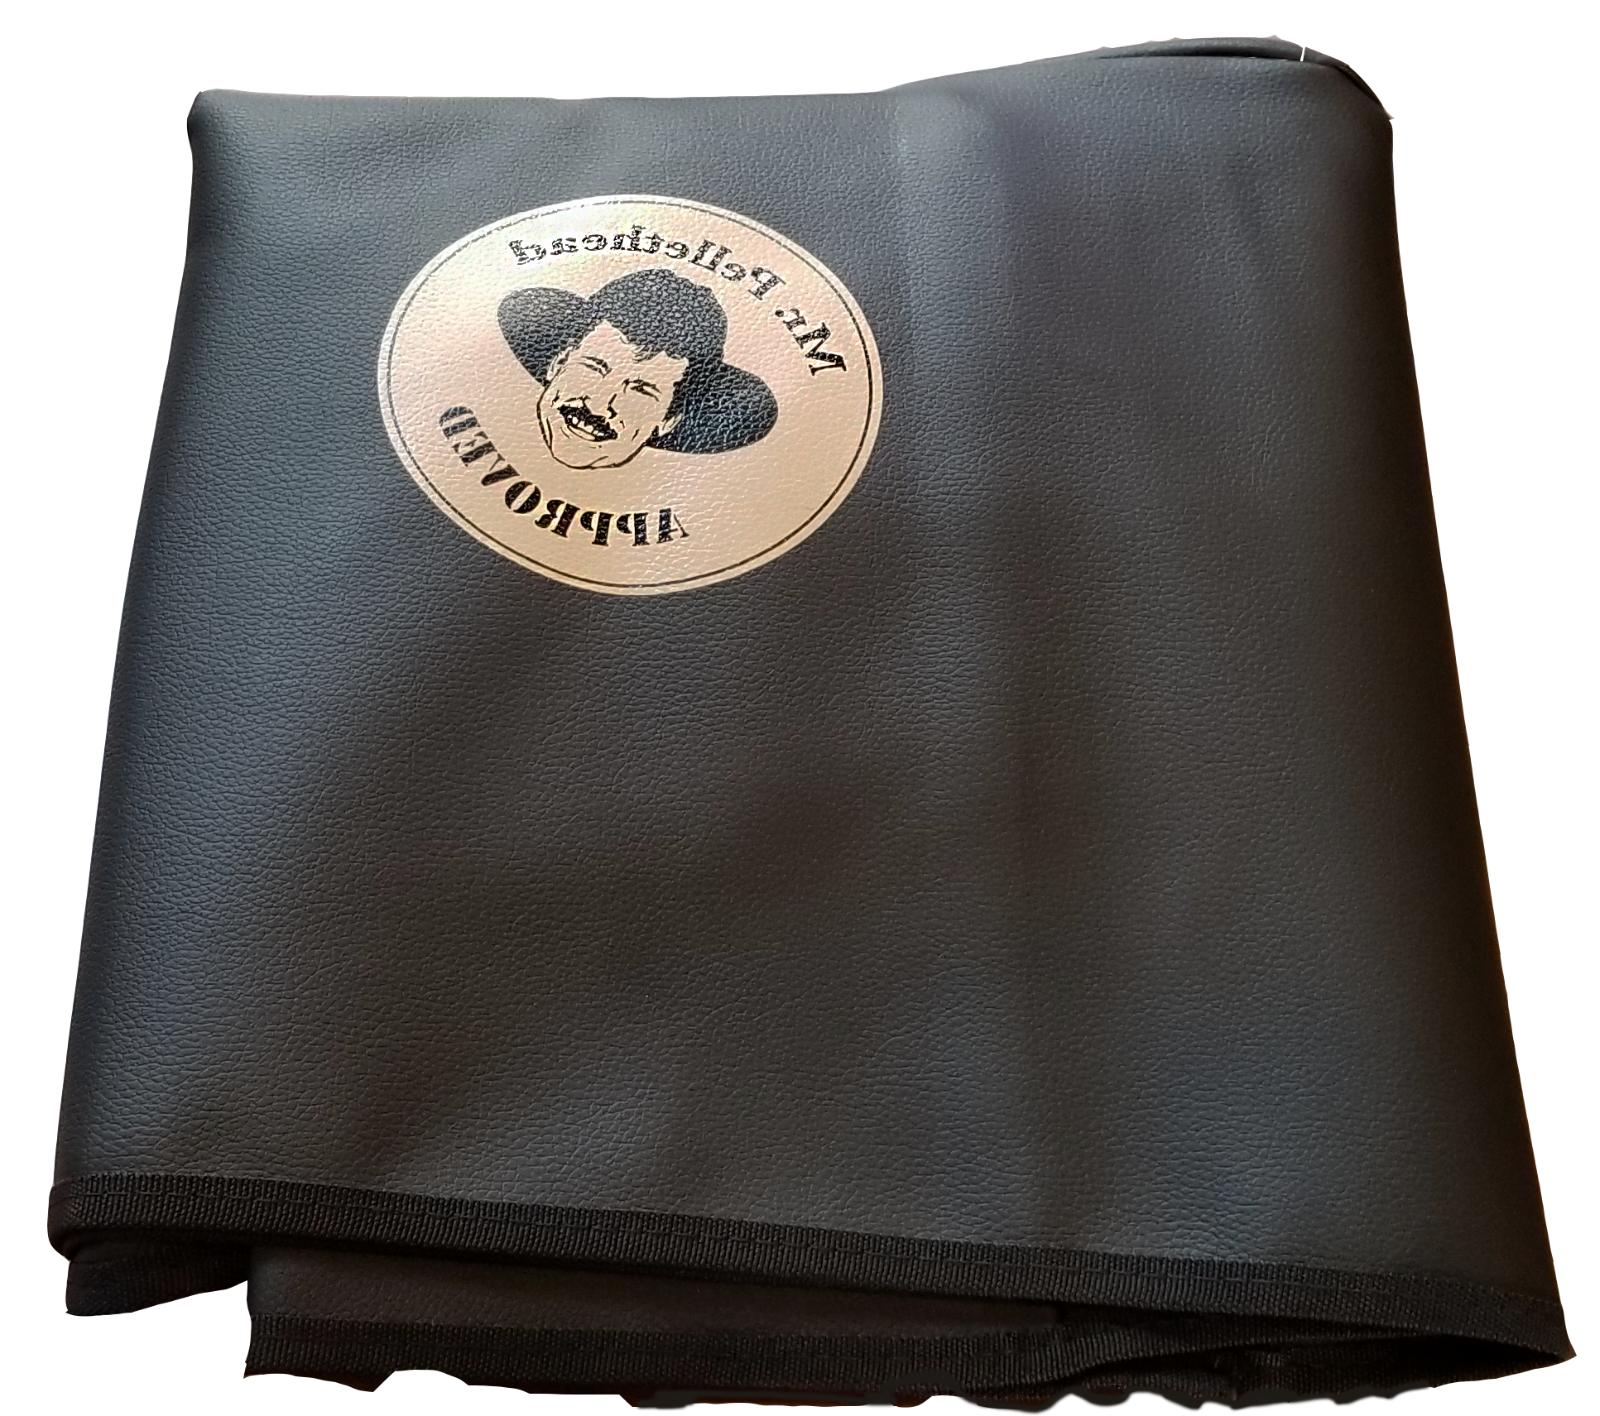 Universal Small BBQ Grill Cover Fits GMG Davy Crockett, 1 Ye